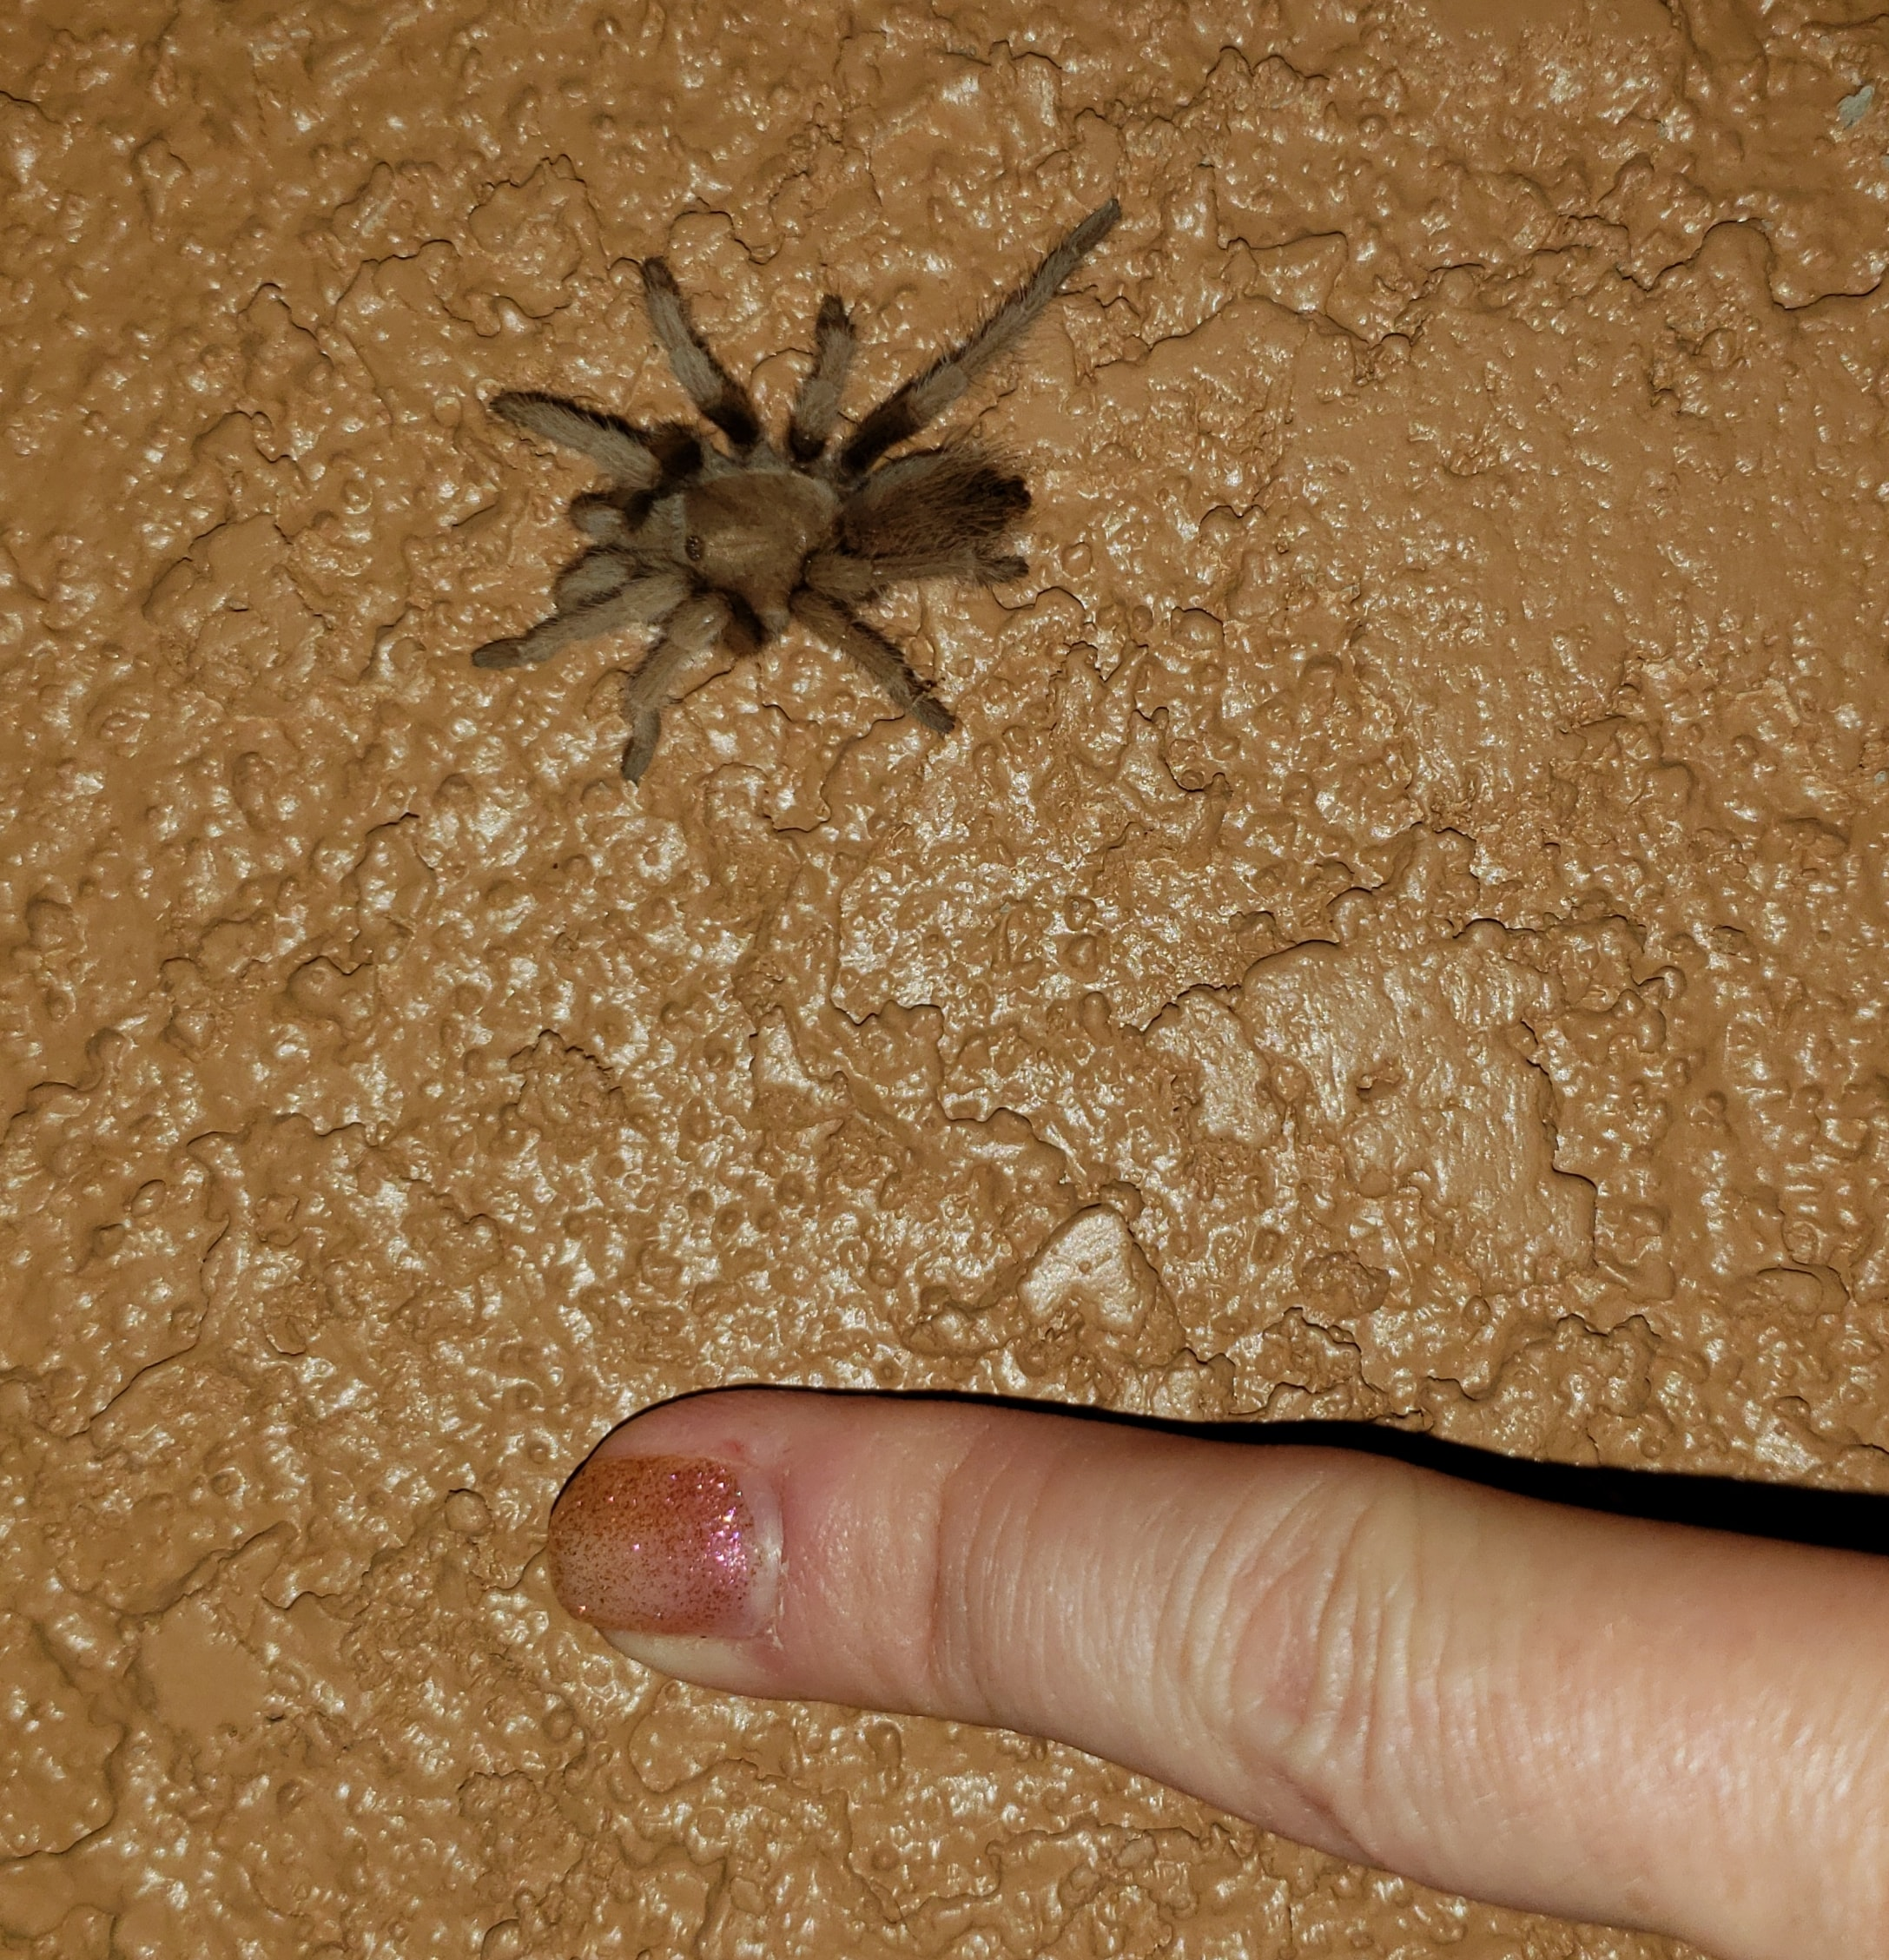 Picture of Theraphosidae (Tarantulas) - Dorsal